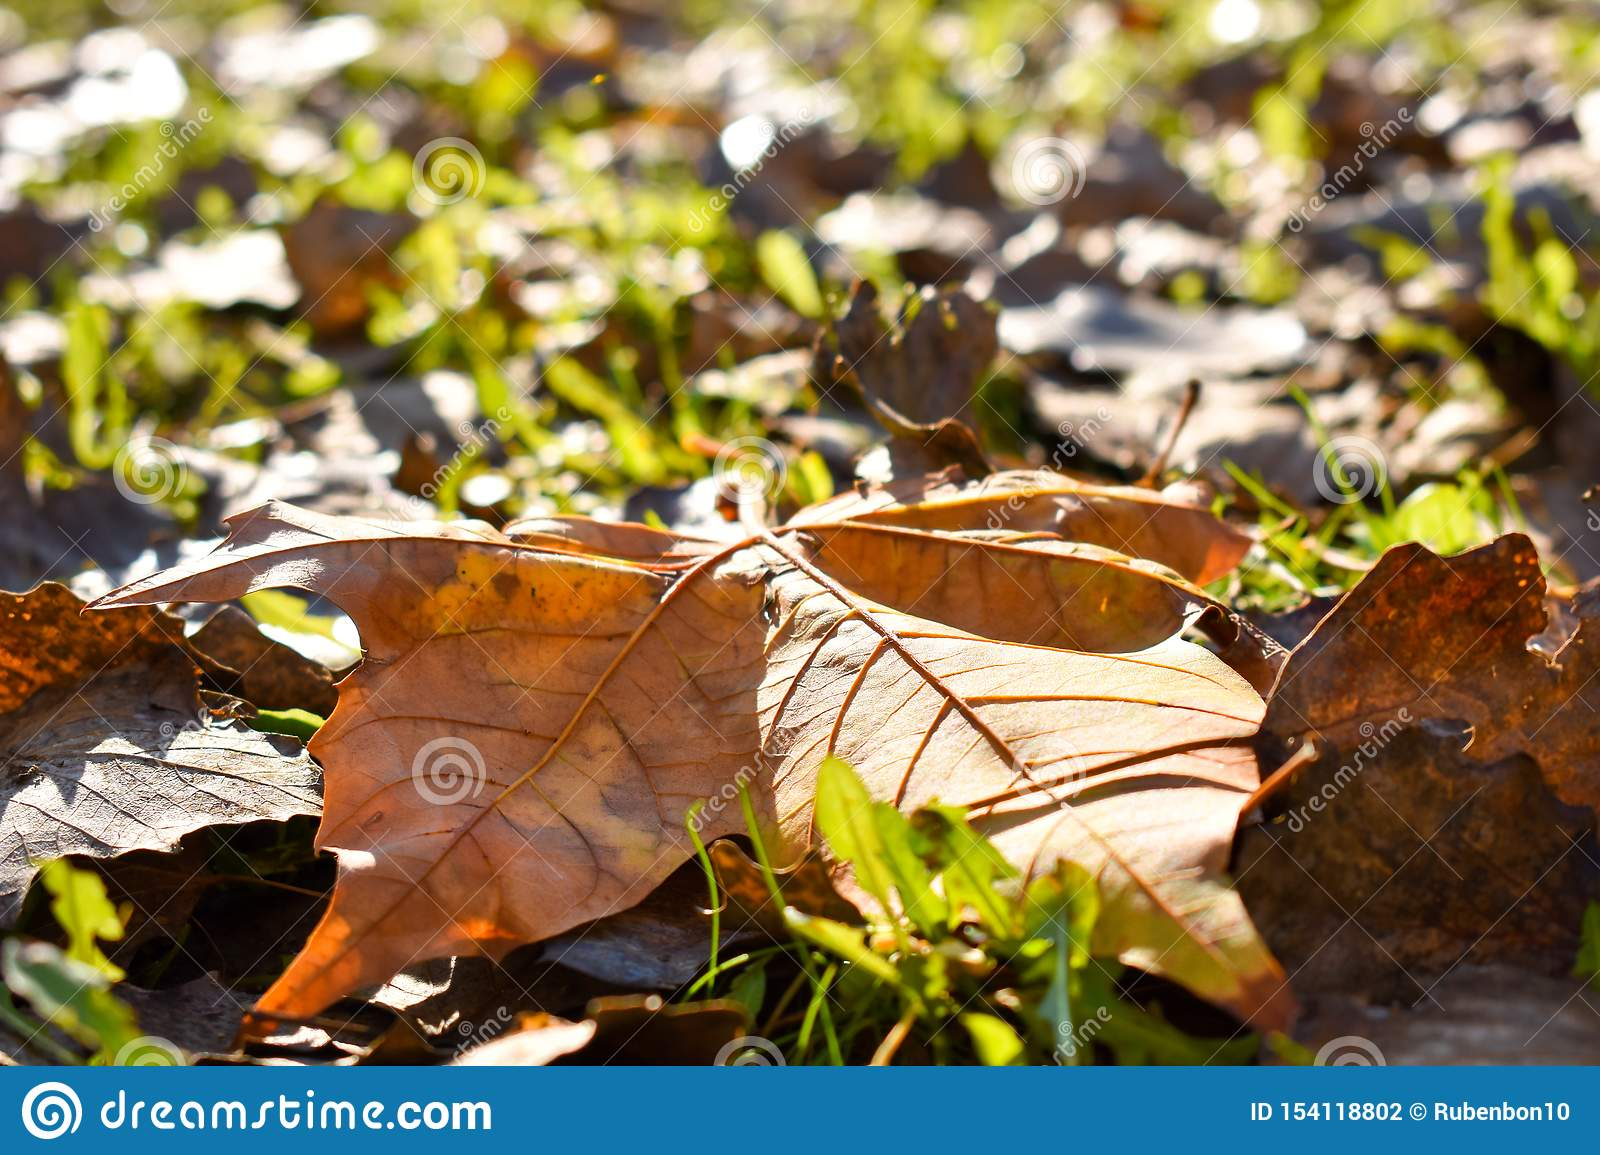 close up of a dry maple orange leaf on the green grass in a scene of a fall day. The leaf has fallen on other dry leaves and the